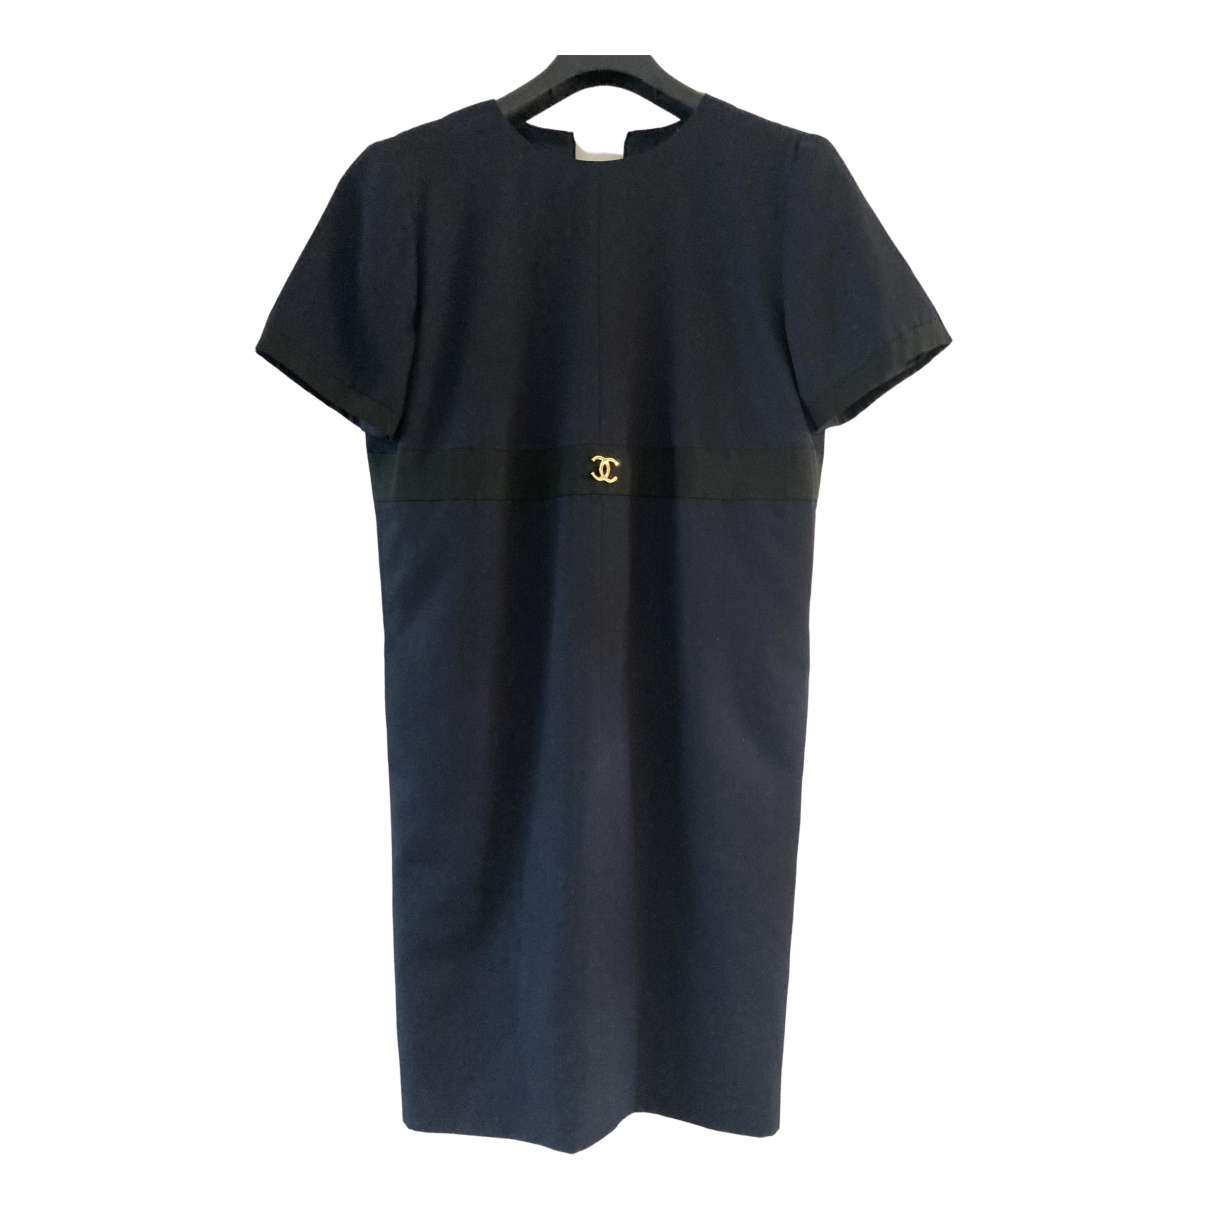 Chanel \N Kleid in  Blau Polyester